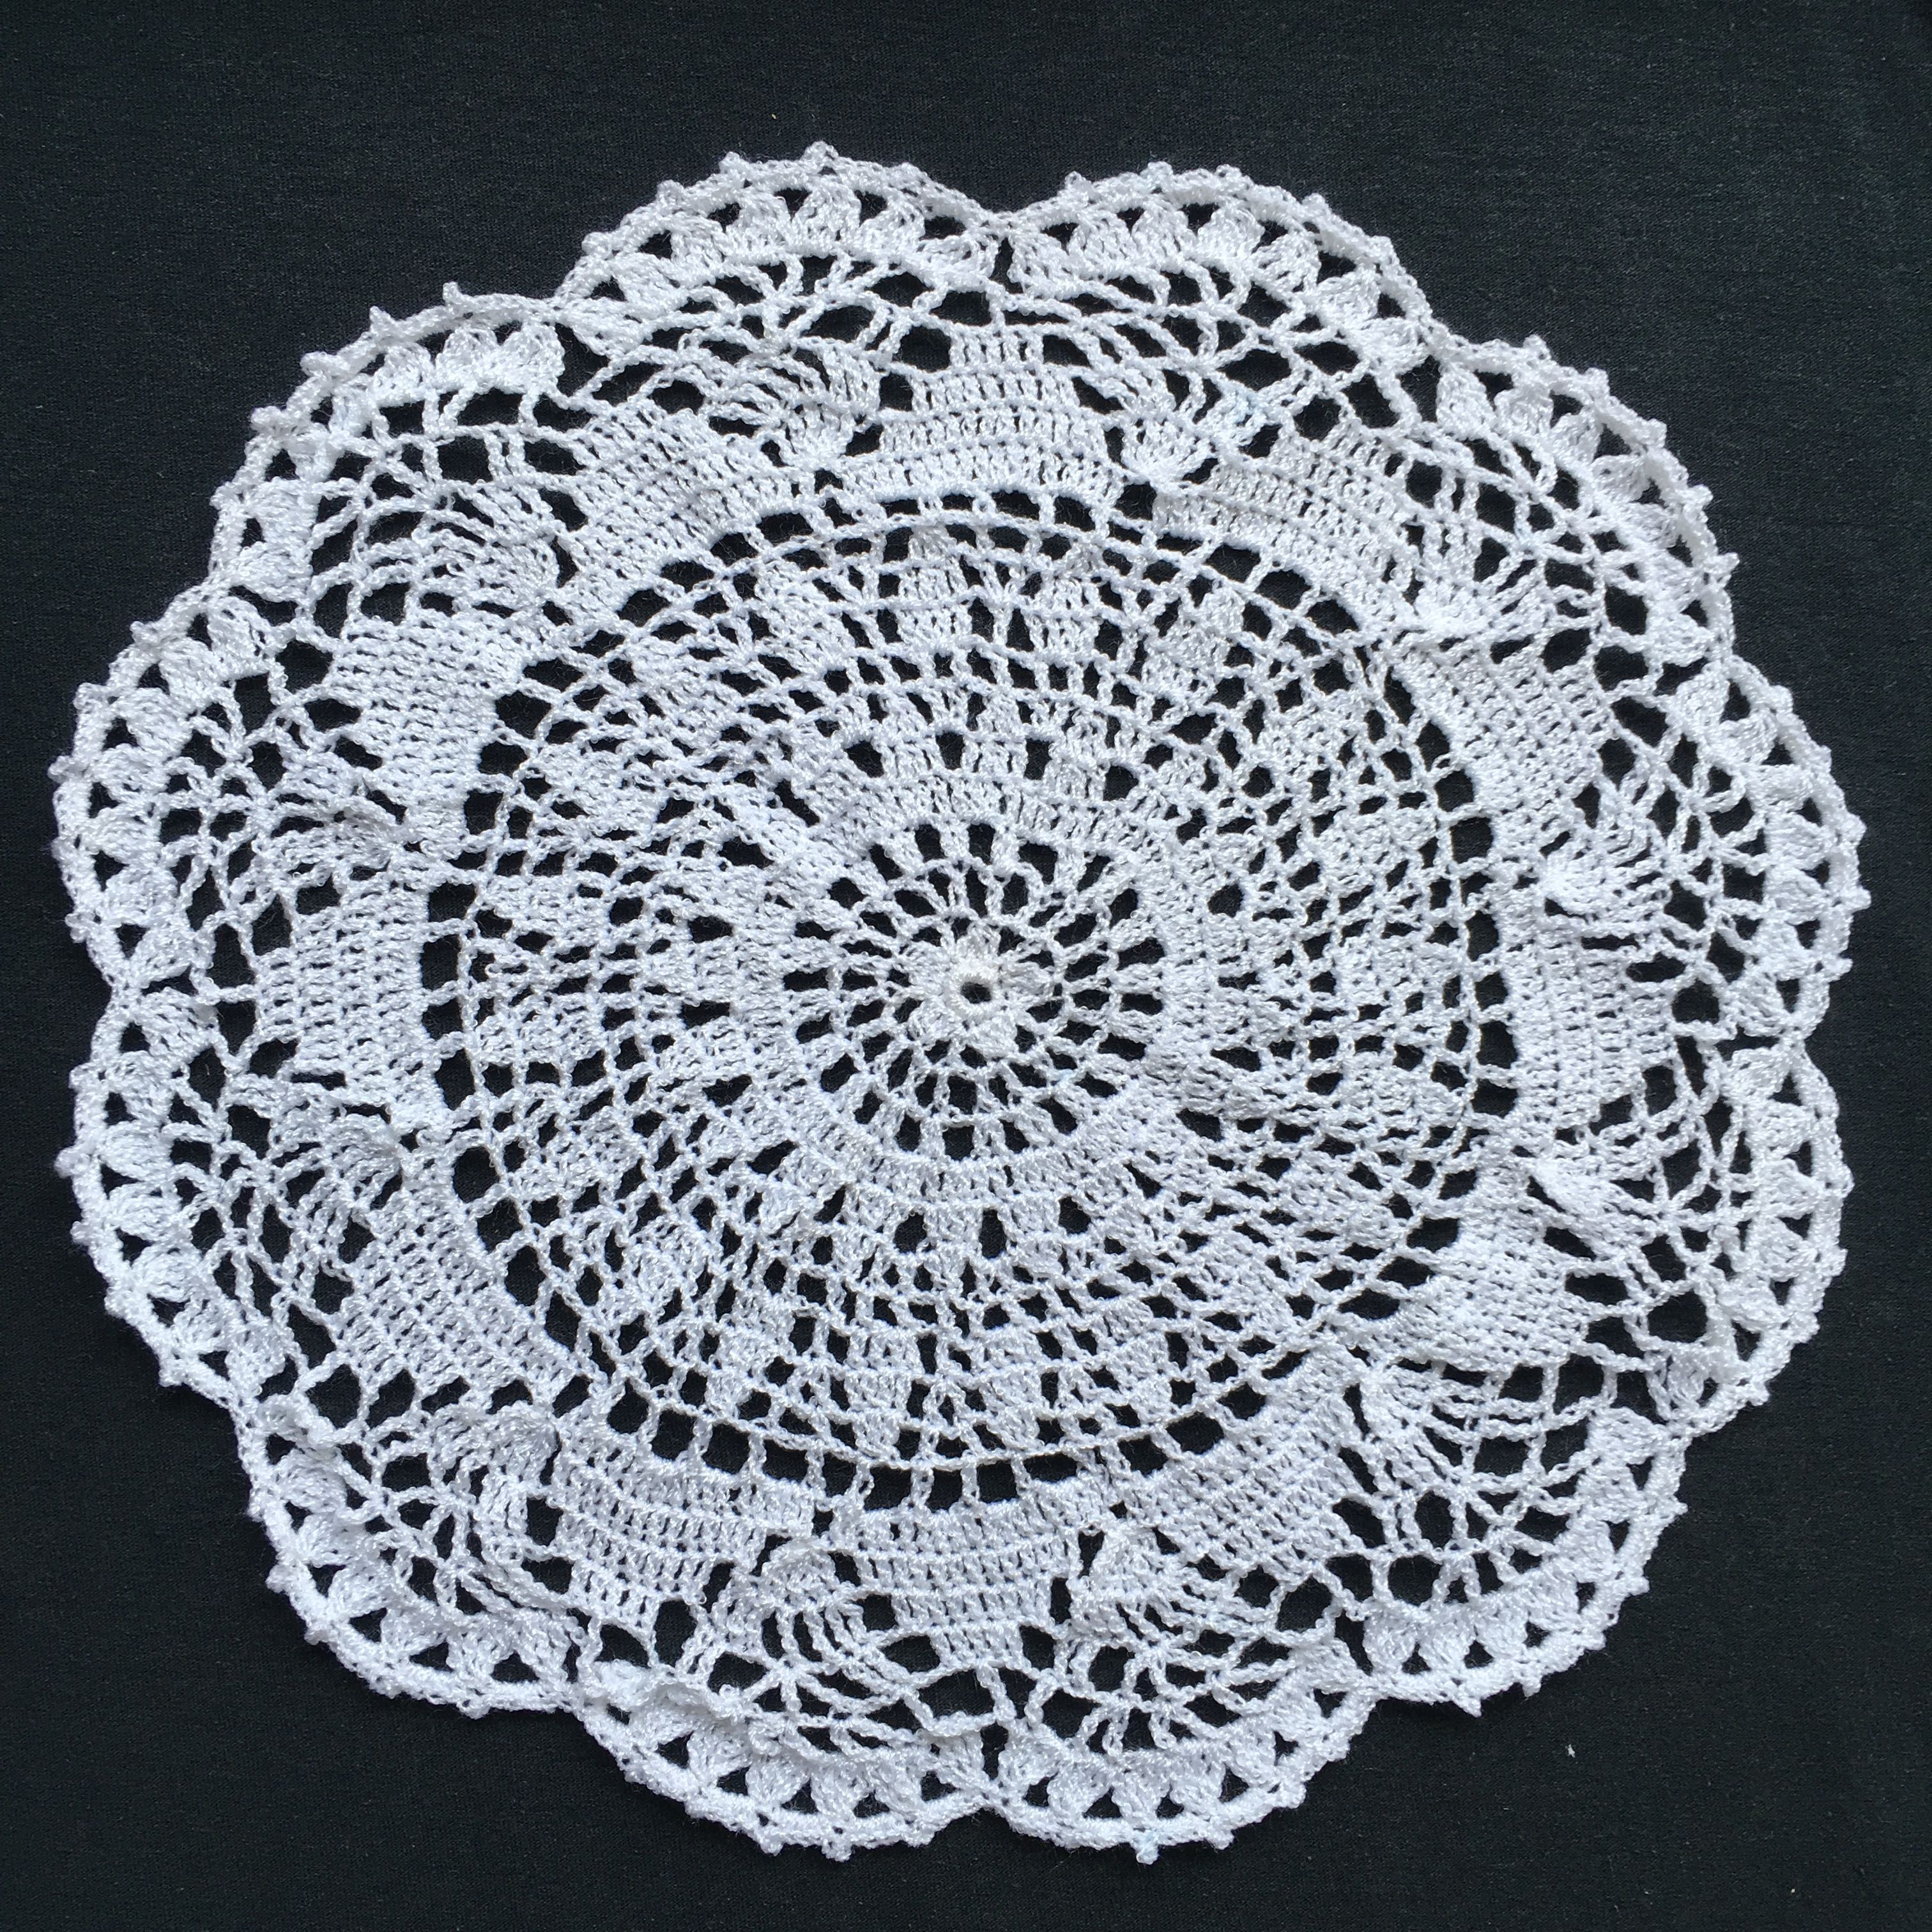 I Crocheted This Doily Patterned By Joanna Stawniak Using Her